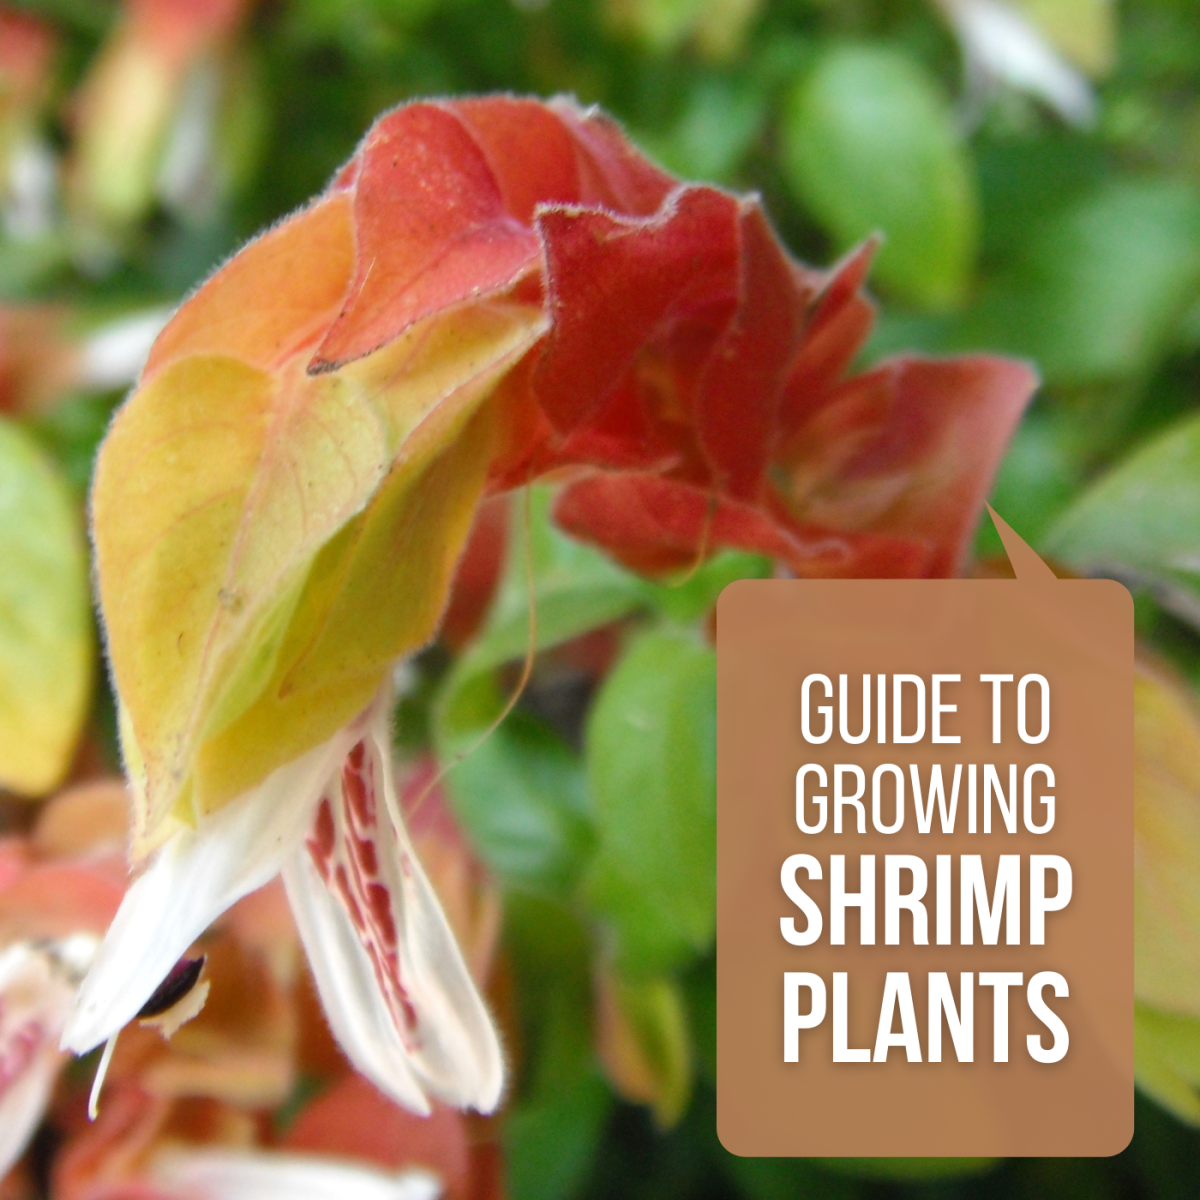 Guide to growing shrimp plants.